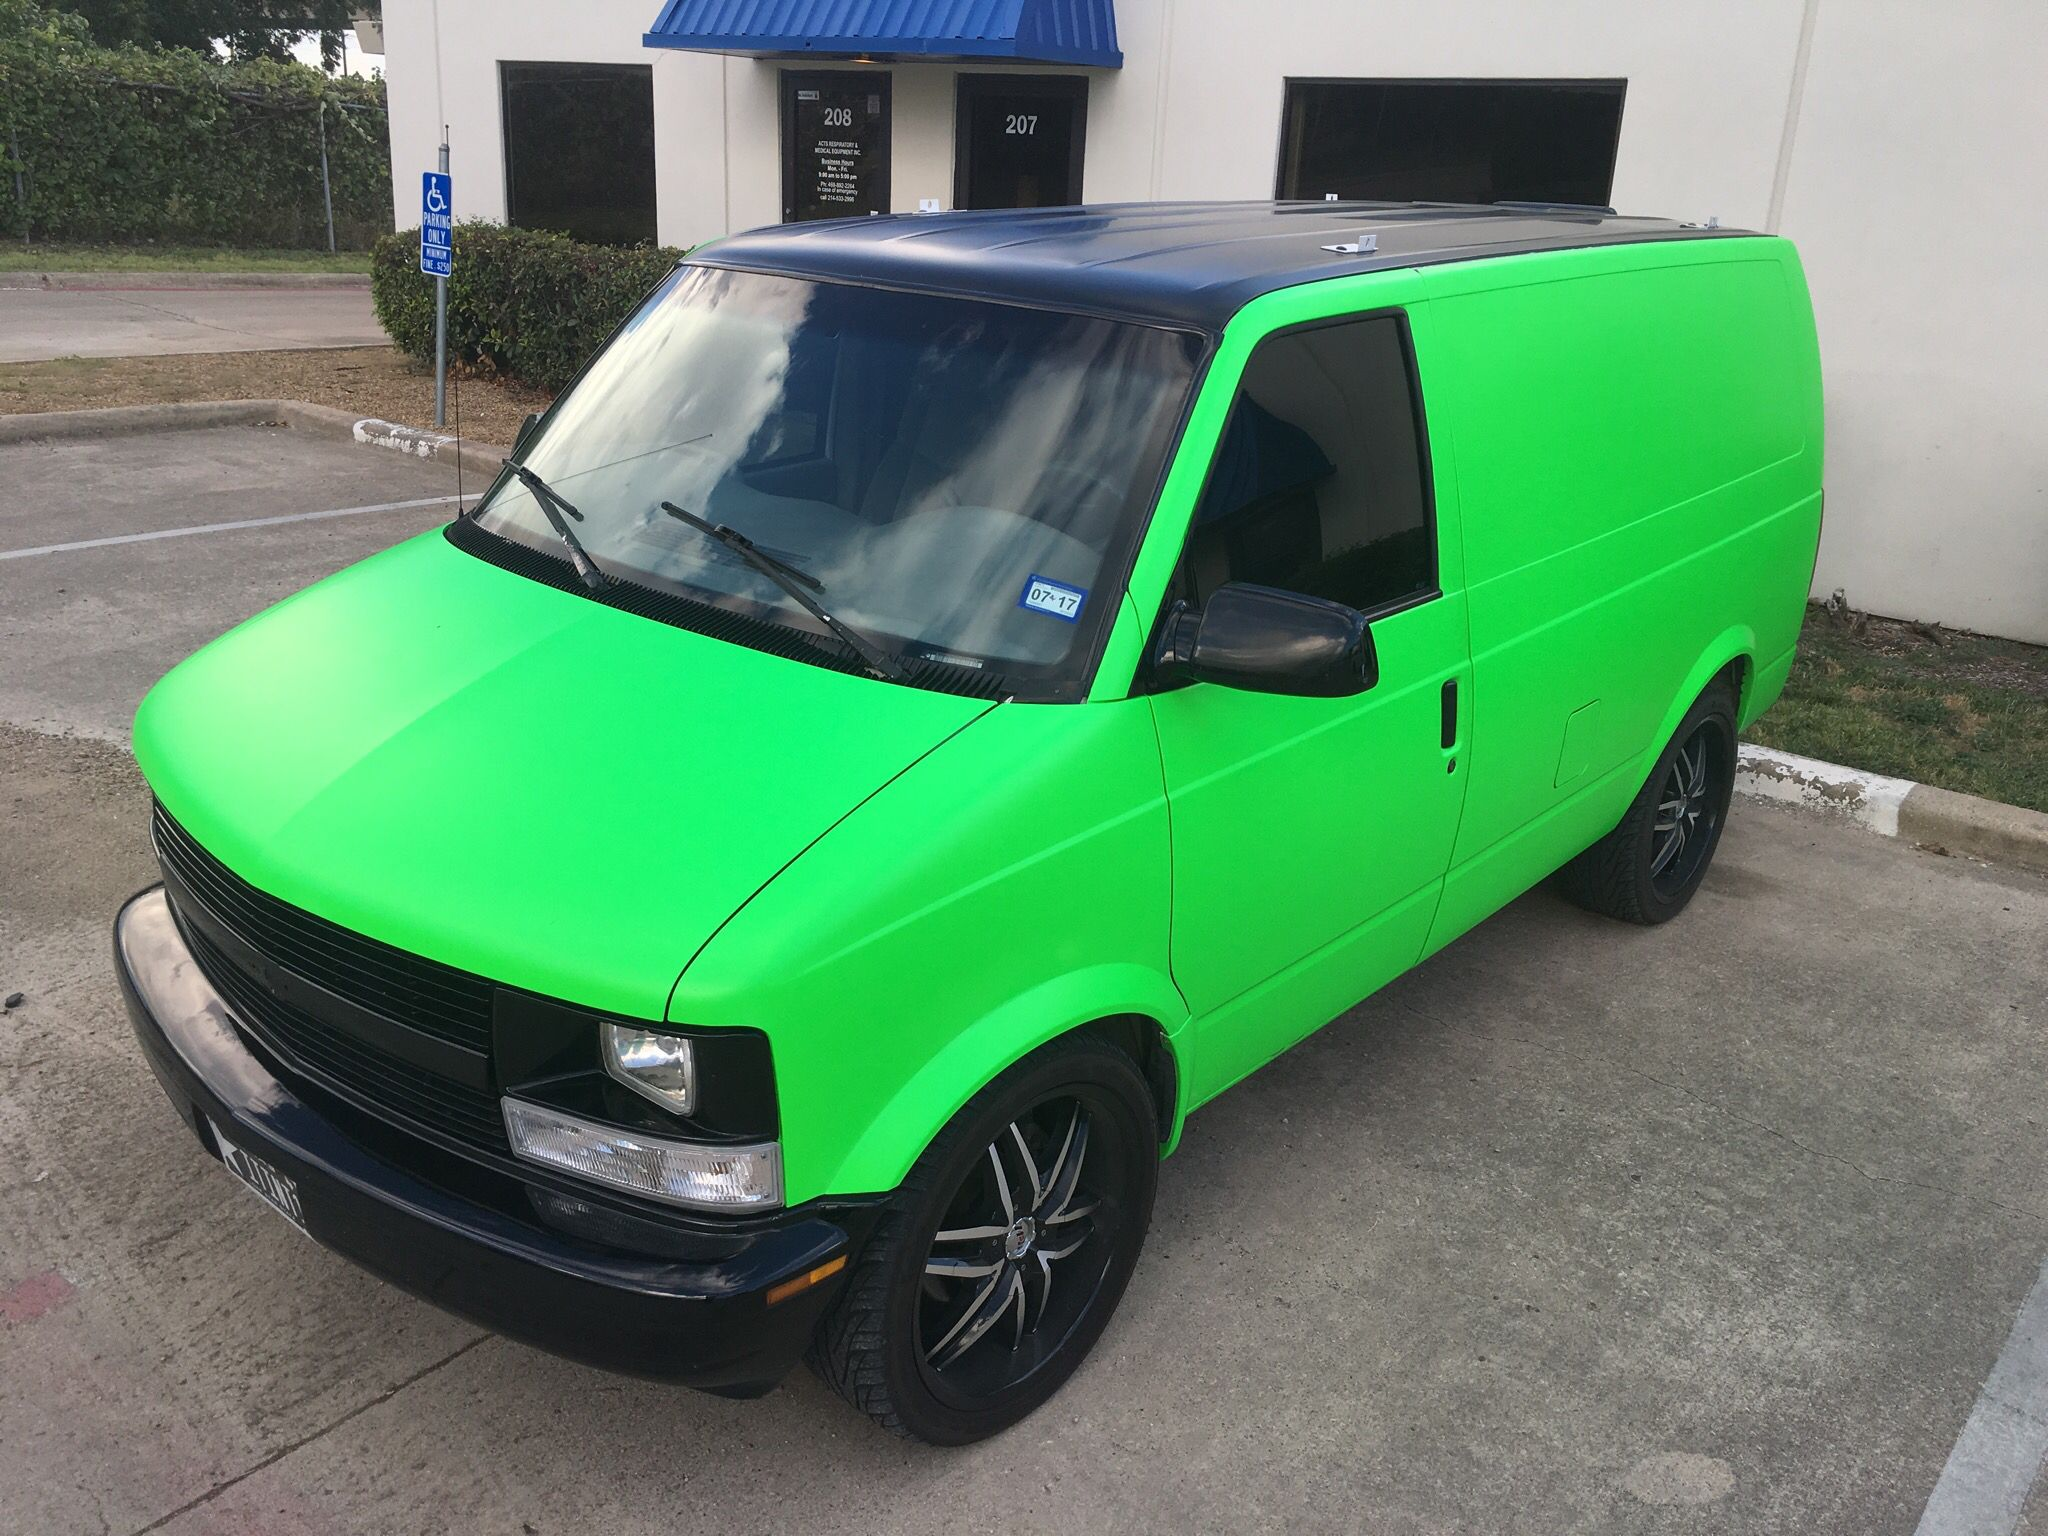 satin neon green wrapped chevrolet astro van by sharp wraps [ 2048 x 1536 Pixel ]